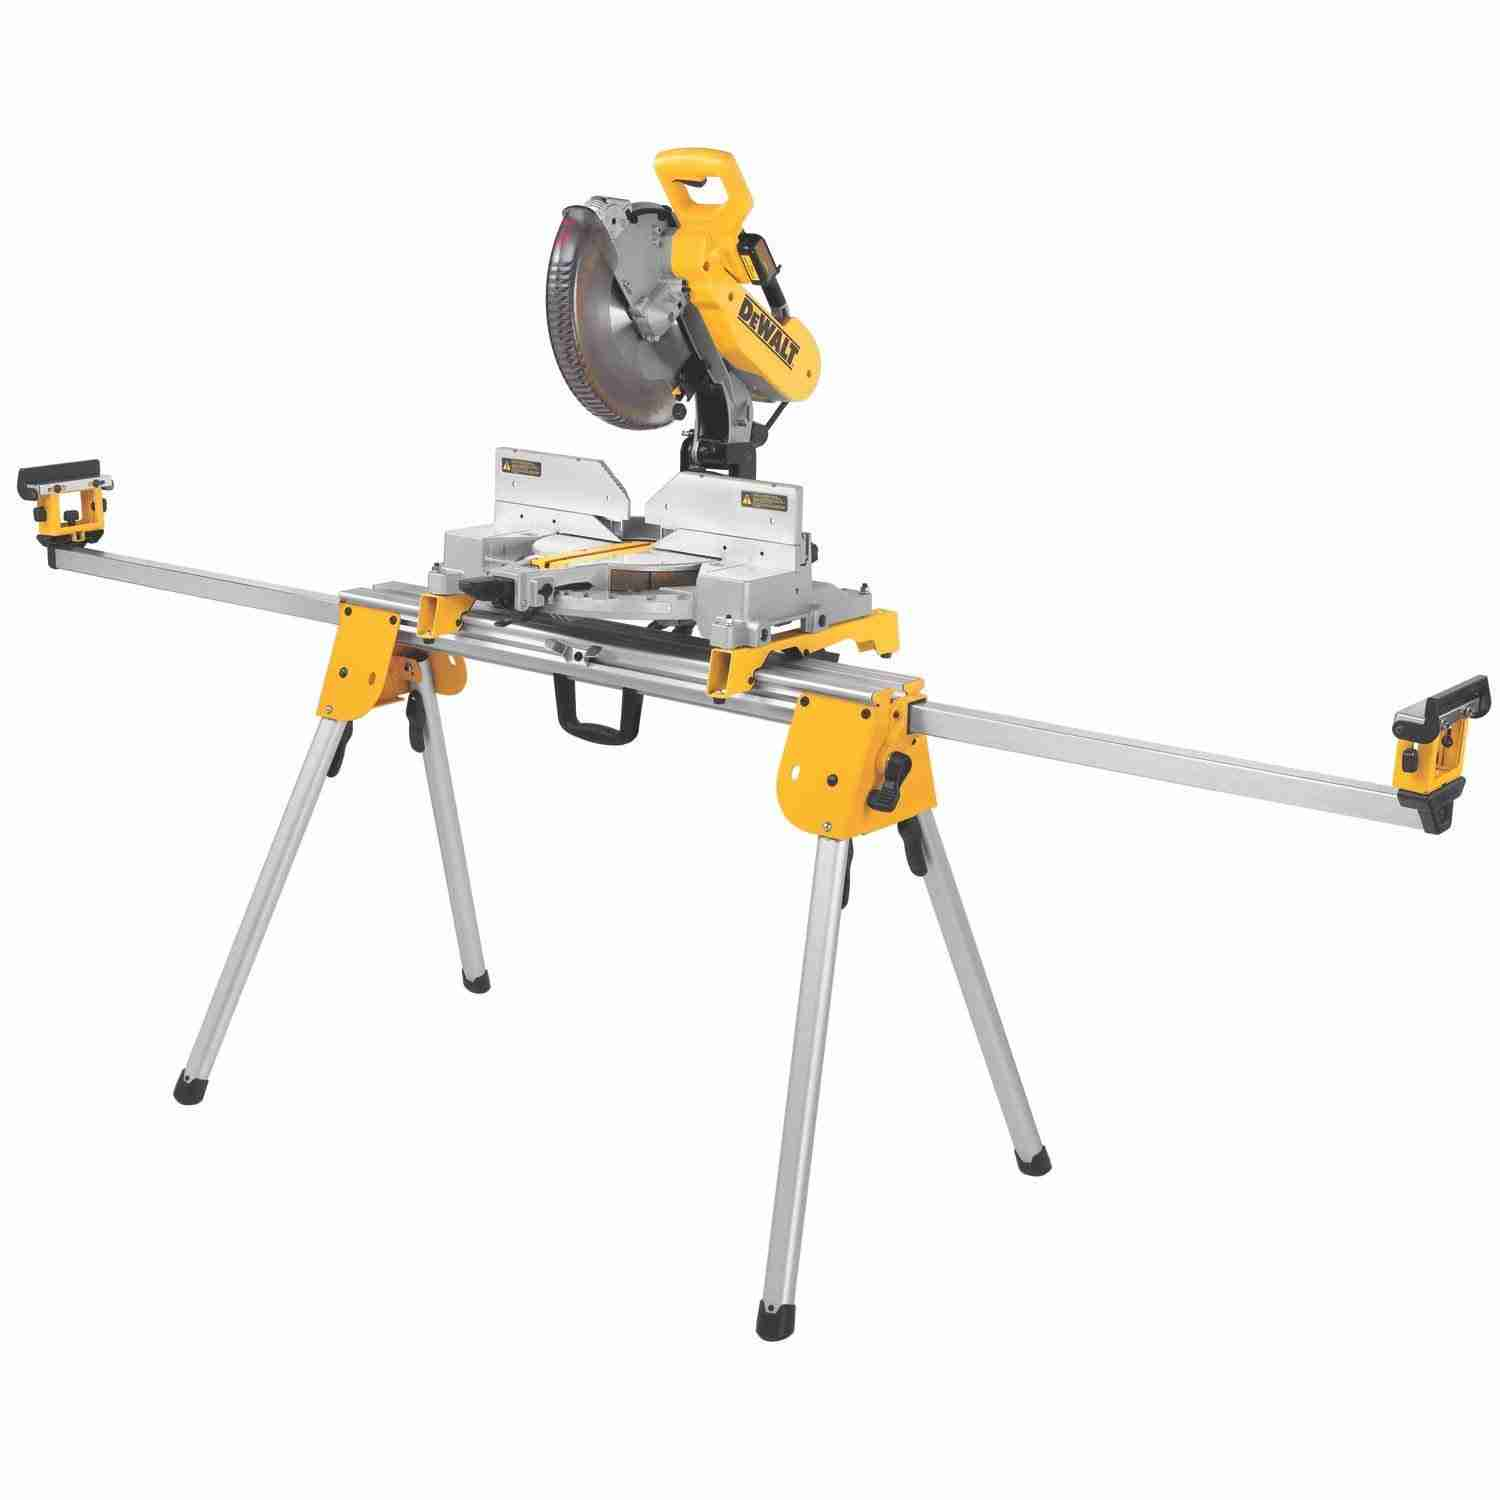 dwx724 miter saw stand